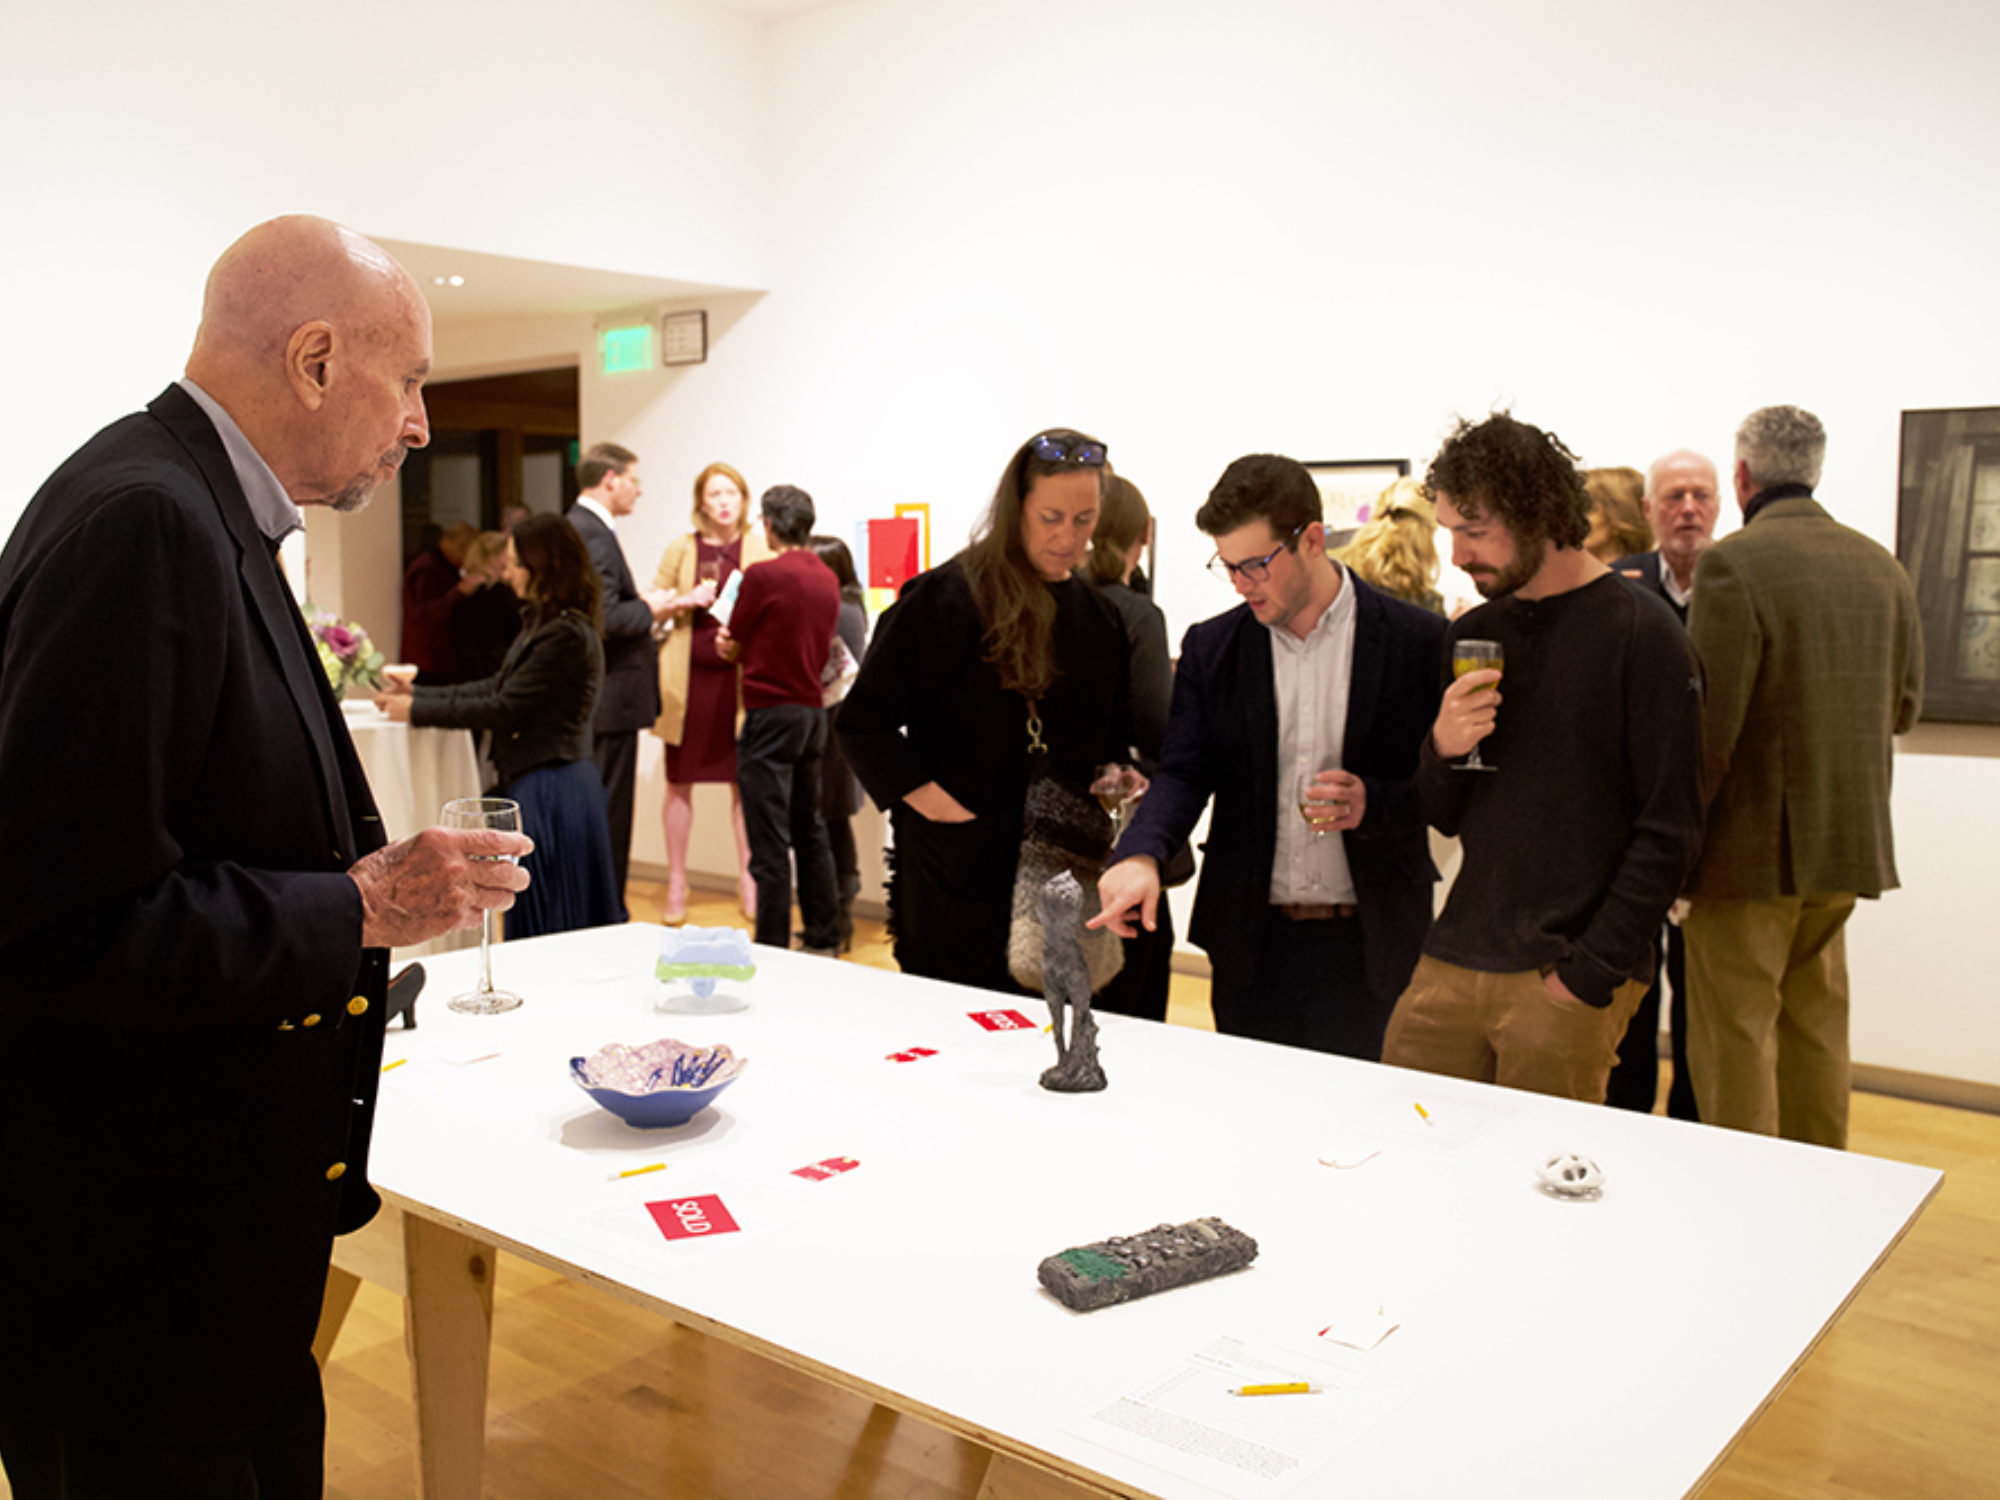 A group of visitors gather around a table with works of art on it